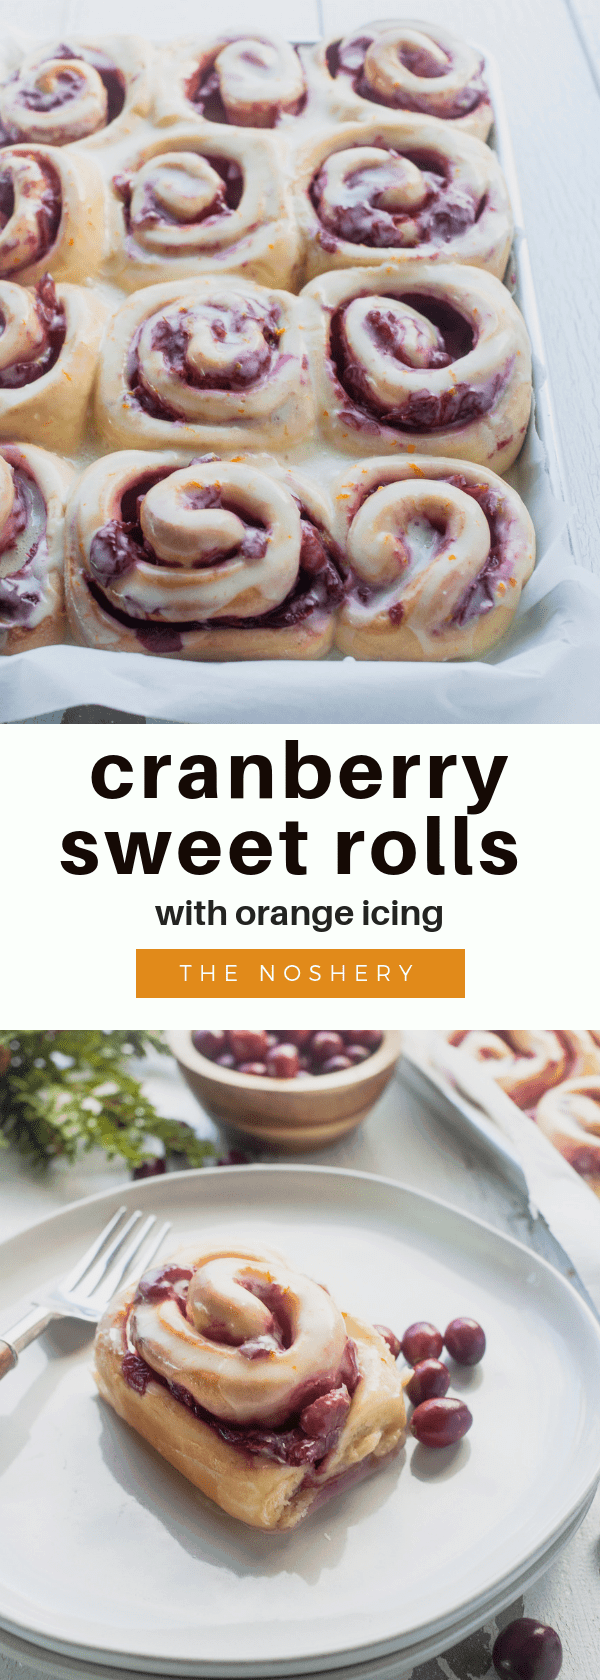 Cranberry Sweet Rolls with Orange Icing | Sweet bread rolls filled with spiced tart cranberry sauce and topped with a sweet orange icing. A great treat for Christmas morning. | The Noshery